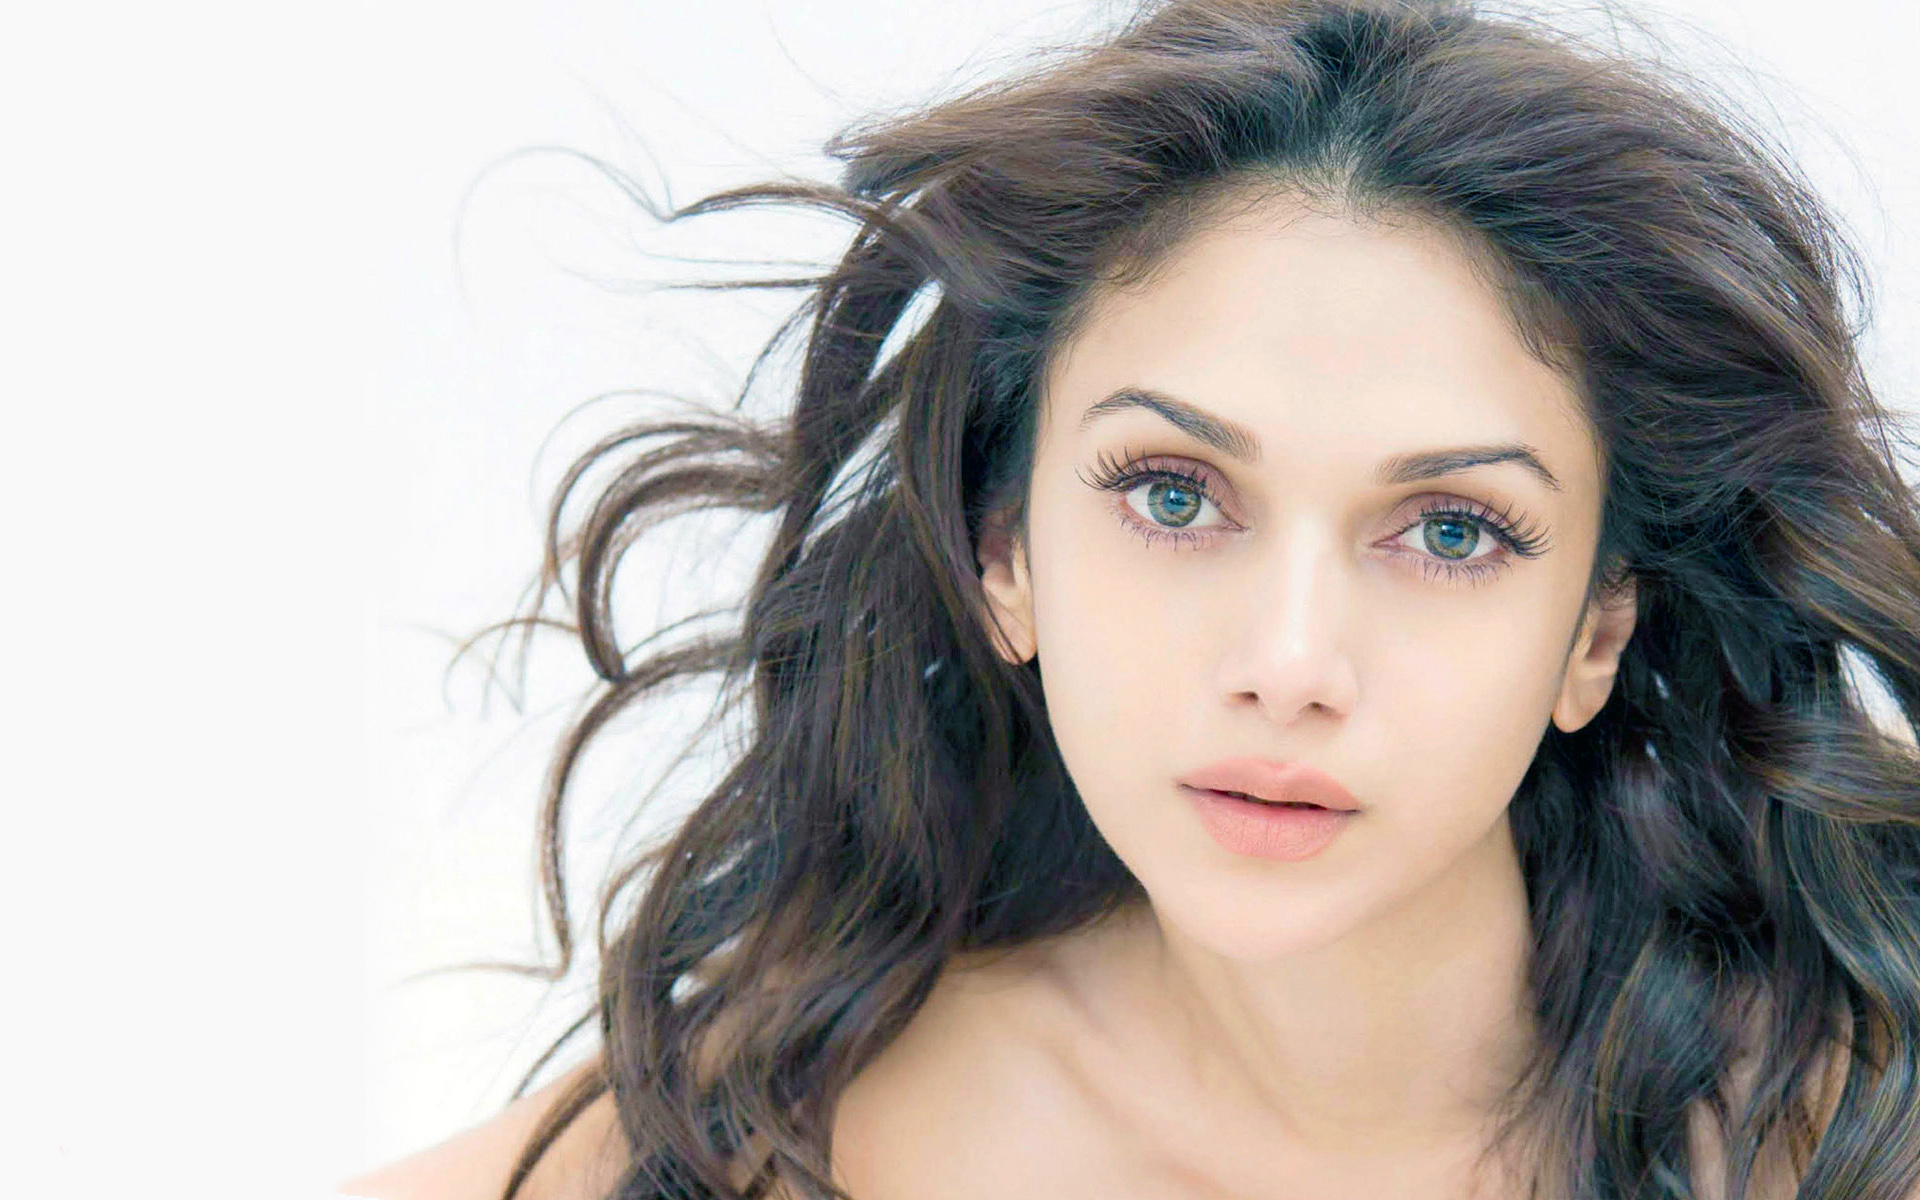 Cute Face Aditi Rao Hydari Mobile Desktop Free Hd Wallpaper